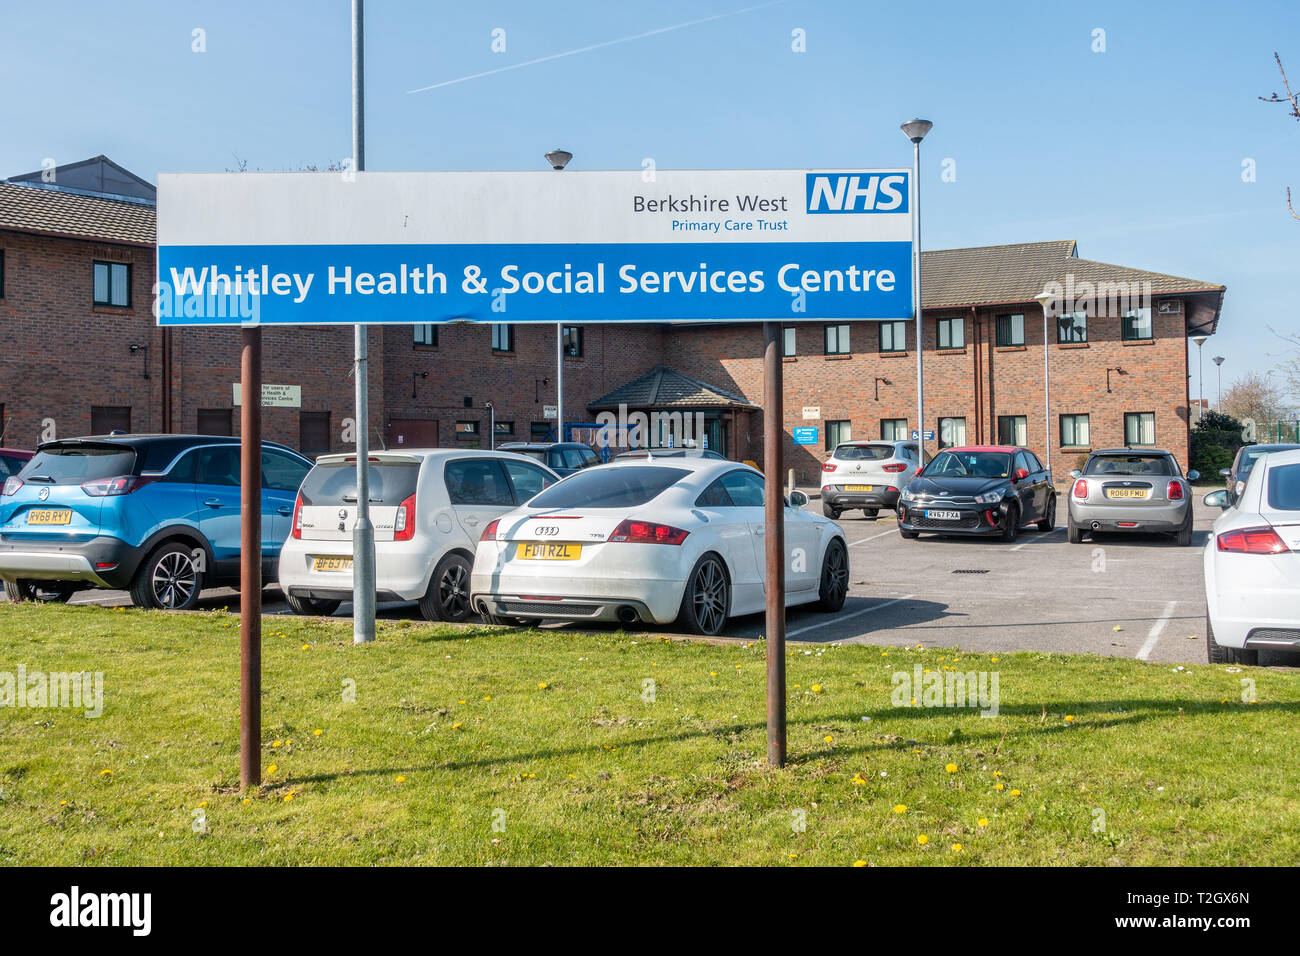 Whitely Health & Social Services Centre on Northumberland Avenue in Whitely, Reading is run by the NHS Berkshire West Primary Care Trust - Stock Image